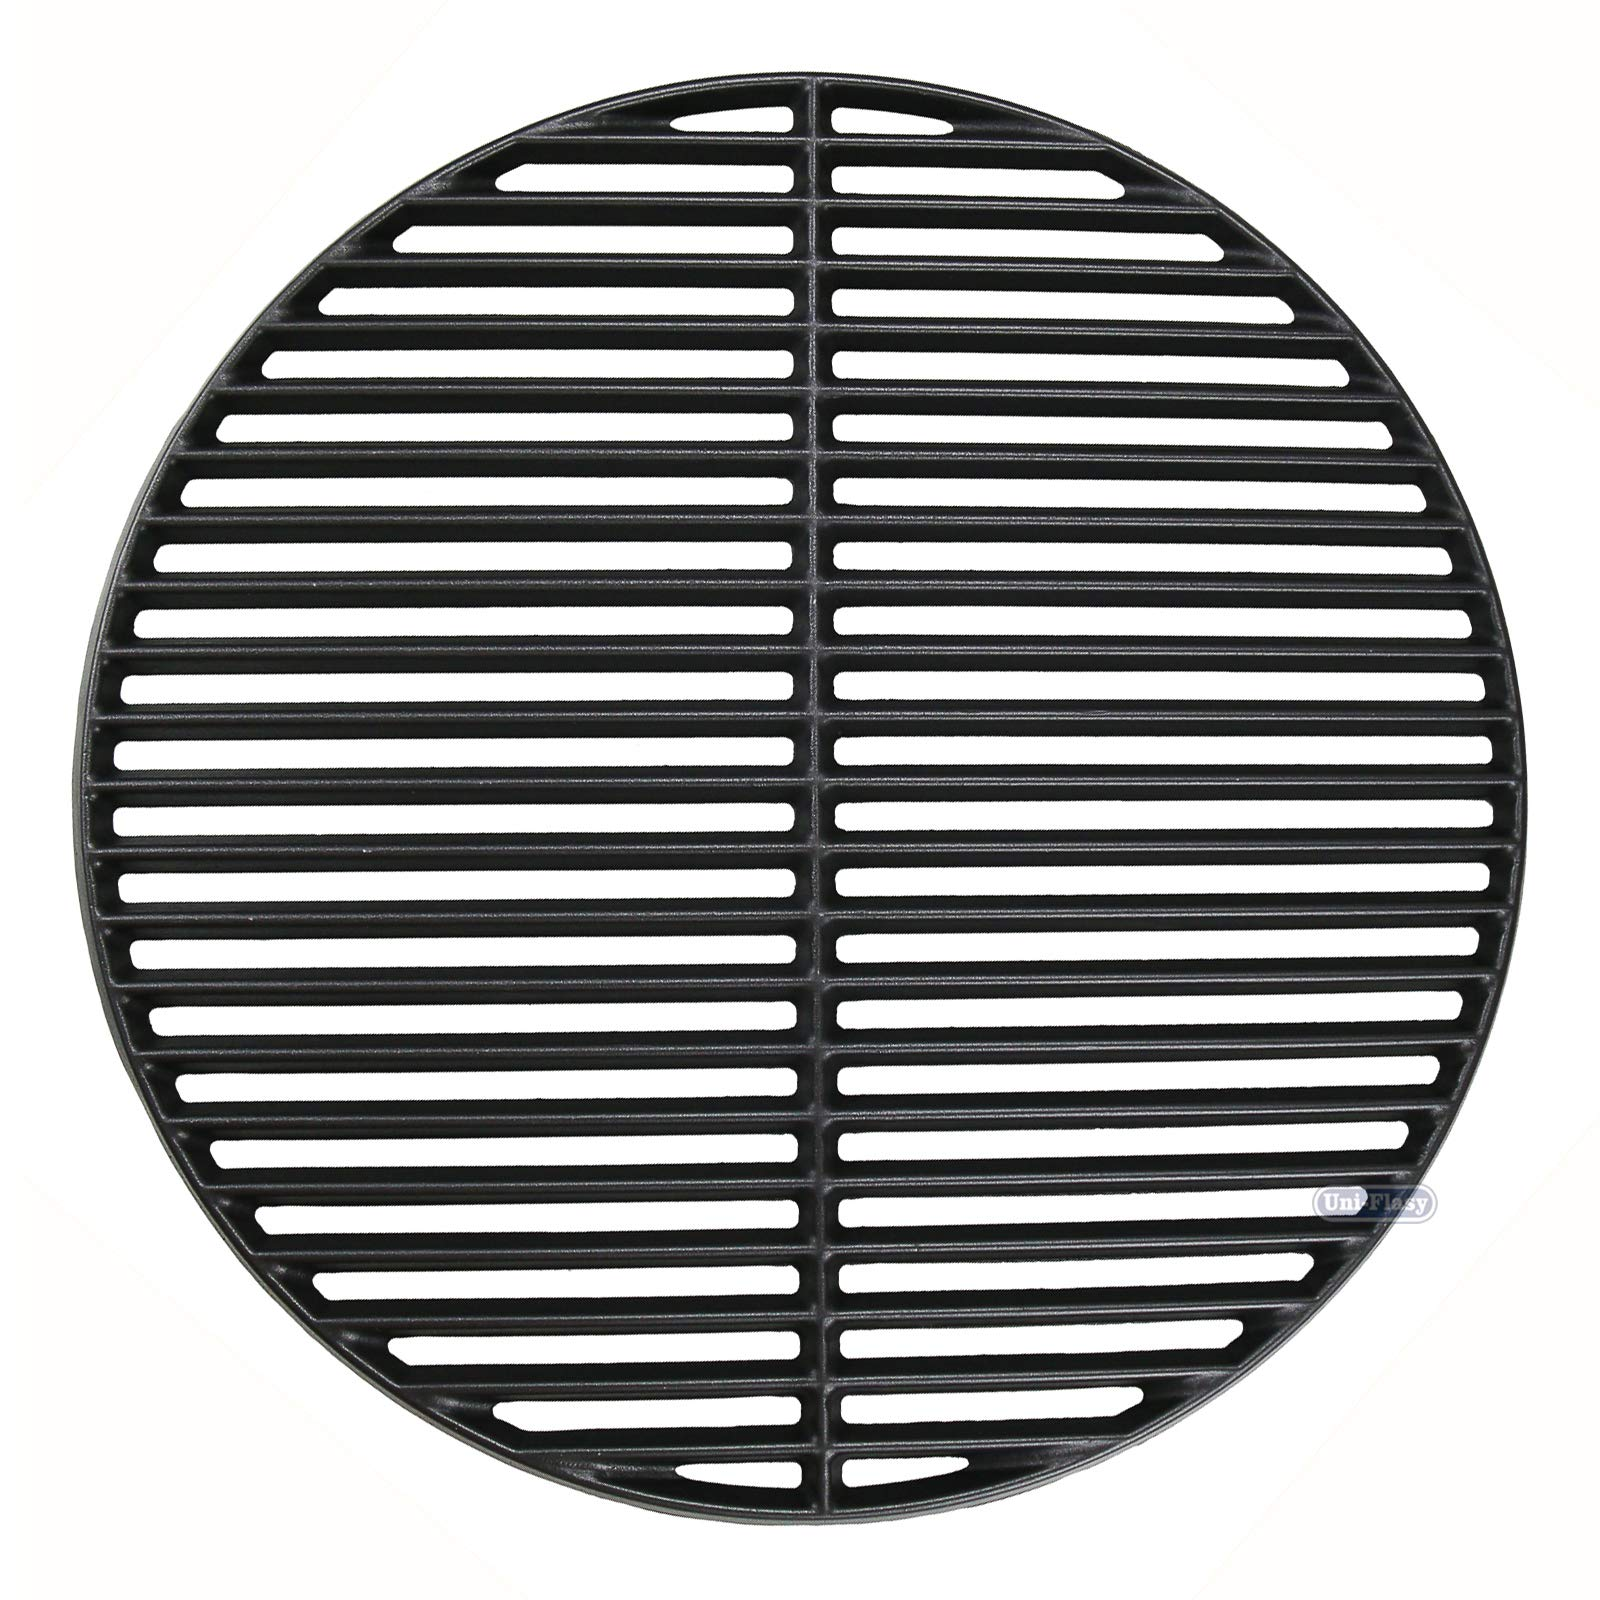 Uniflasy Cast Iron Cooking Grid Grates for Large Big Green Egg/ (L) BGE, Vision Grill VGKSS-CC2, B-11N1A1-Y2A Kamado Charcoal Grill Accessories, 18 3/16 Inches by Uniflasy